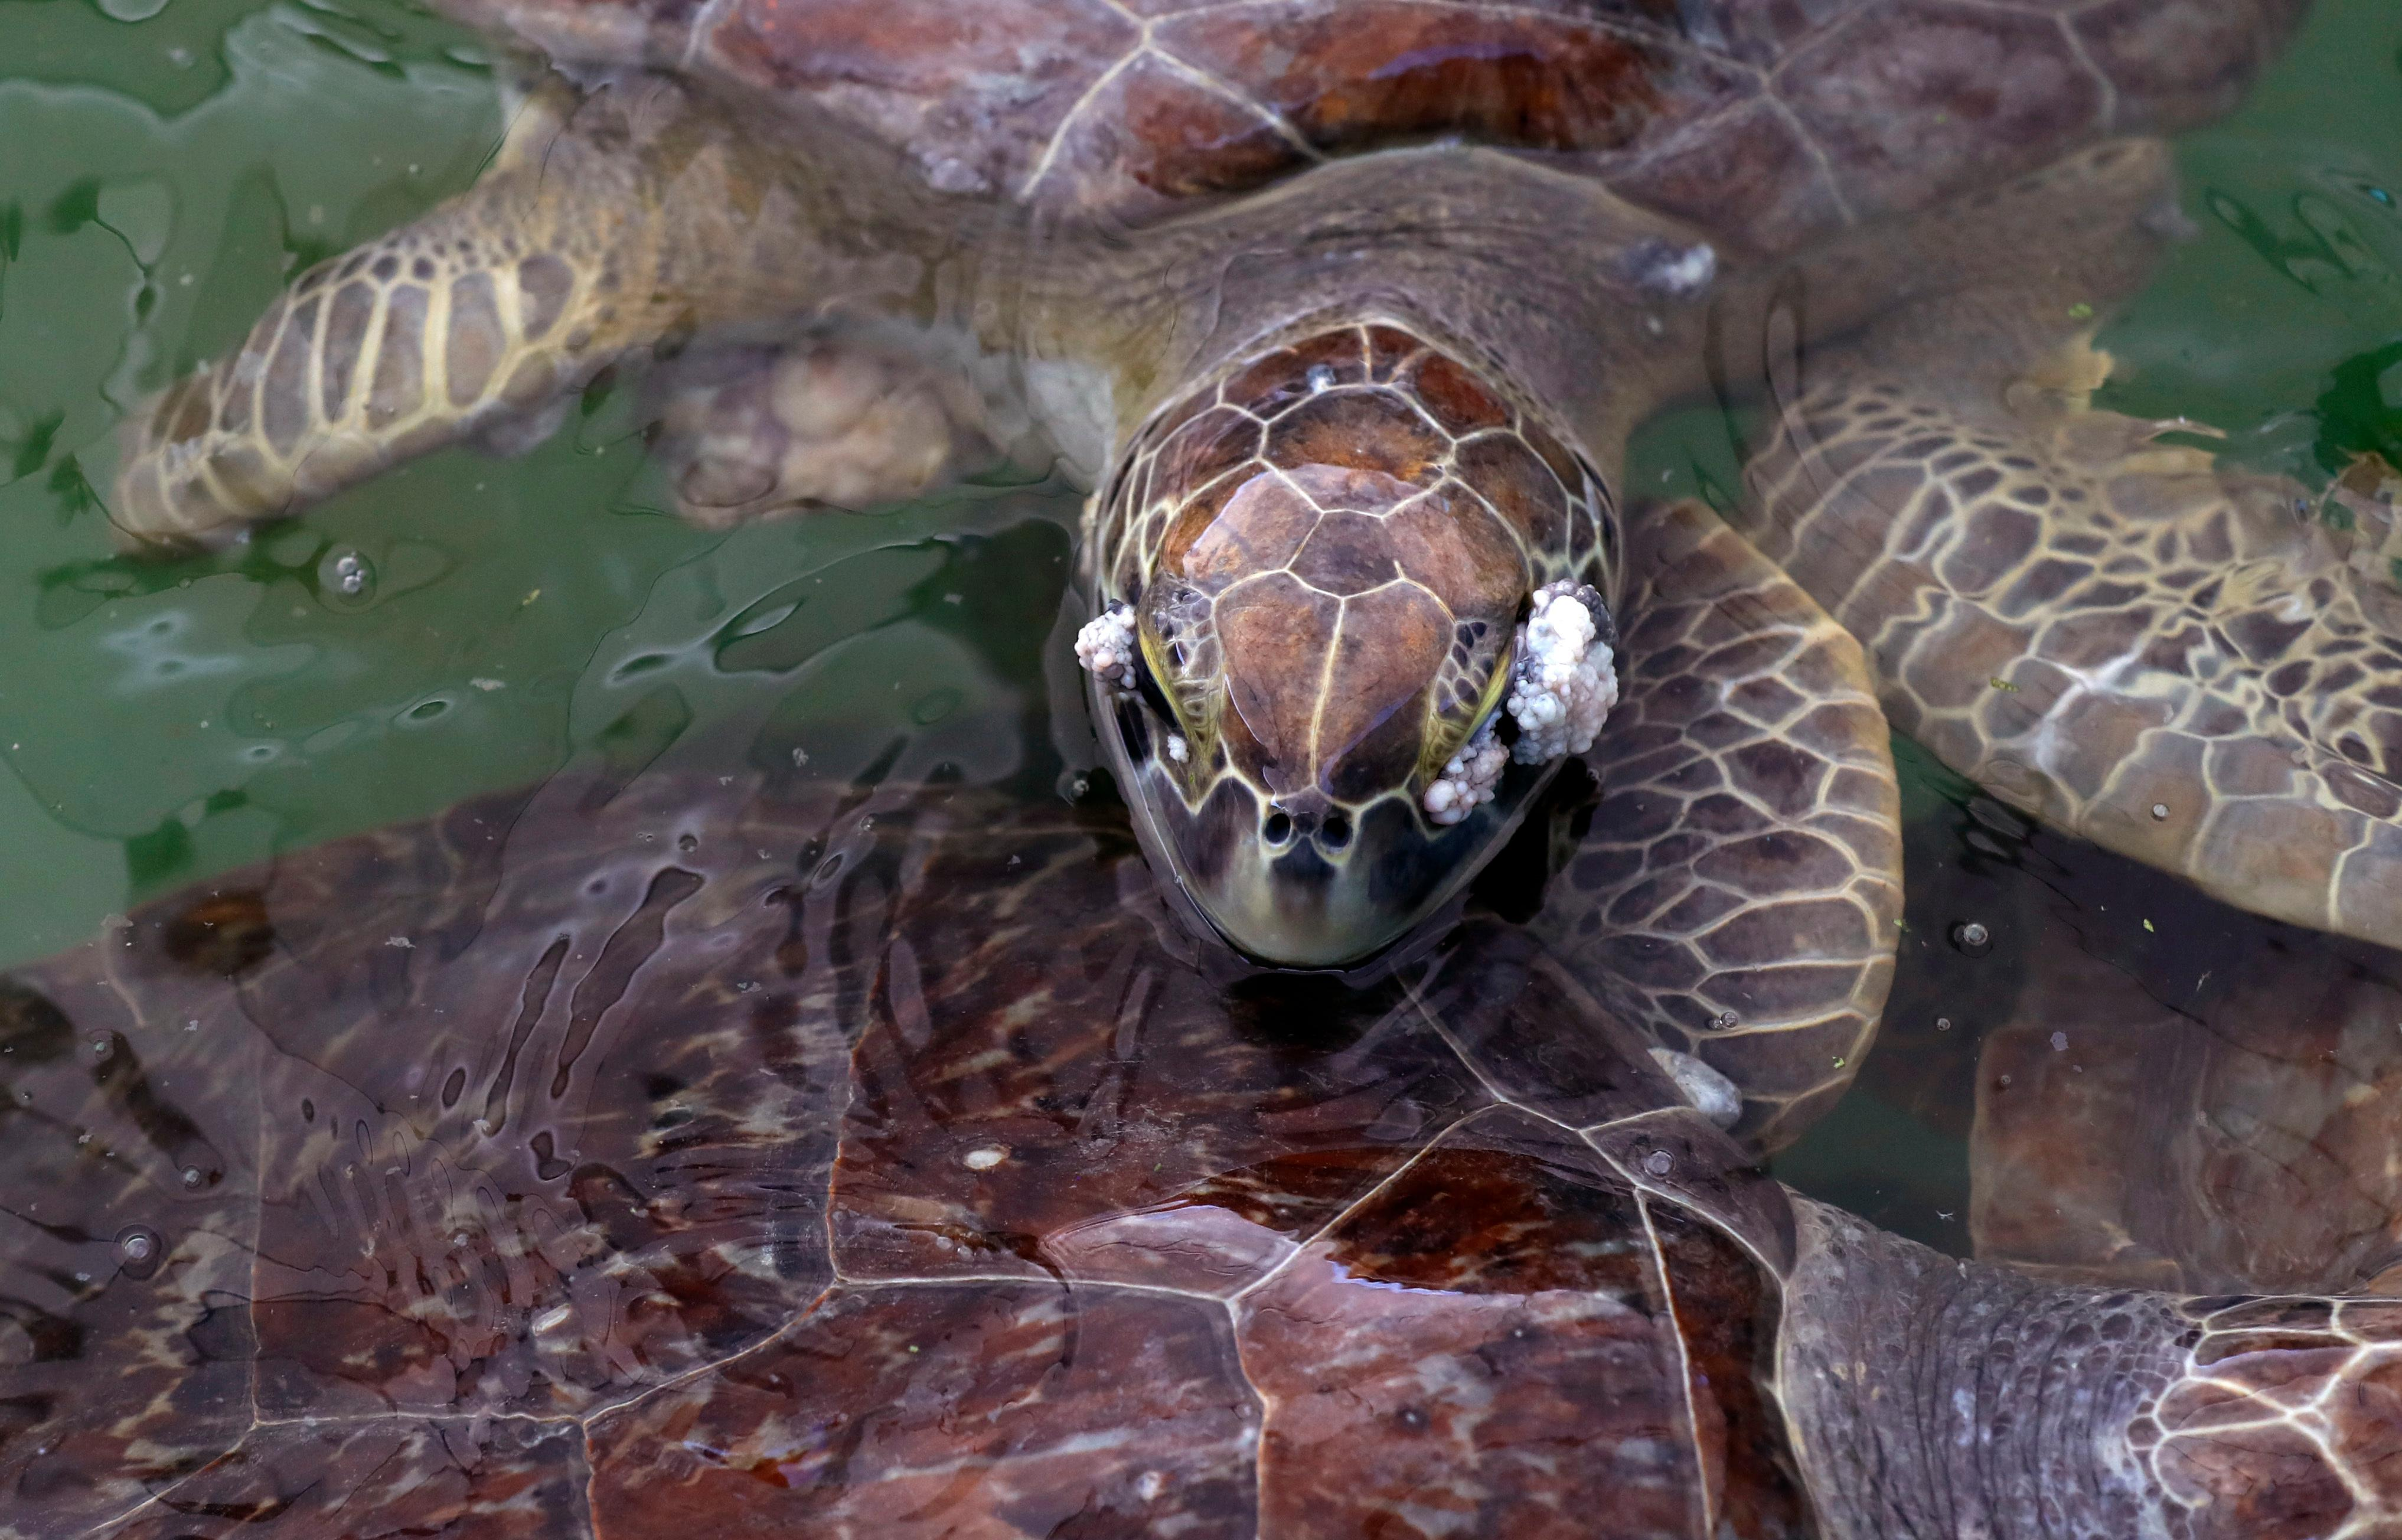 A sea turtle that had been held at the Animal Rehabilitation Keep in Port Aransas, Texas, swims in a tank at the Sea Life Center, Saturday, Sept. 30, 2017, in Corpus Christi, Texas. About 30 sea turtles, many awaiting surgery for tumors, were transferred after Hurricane Harvey destroyed the facility in Port Aransas. (AP Photo/Eric Gay)